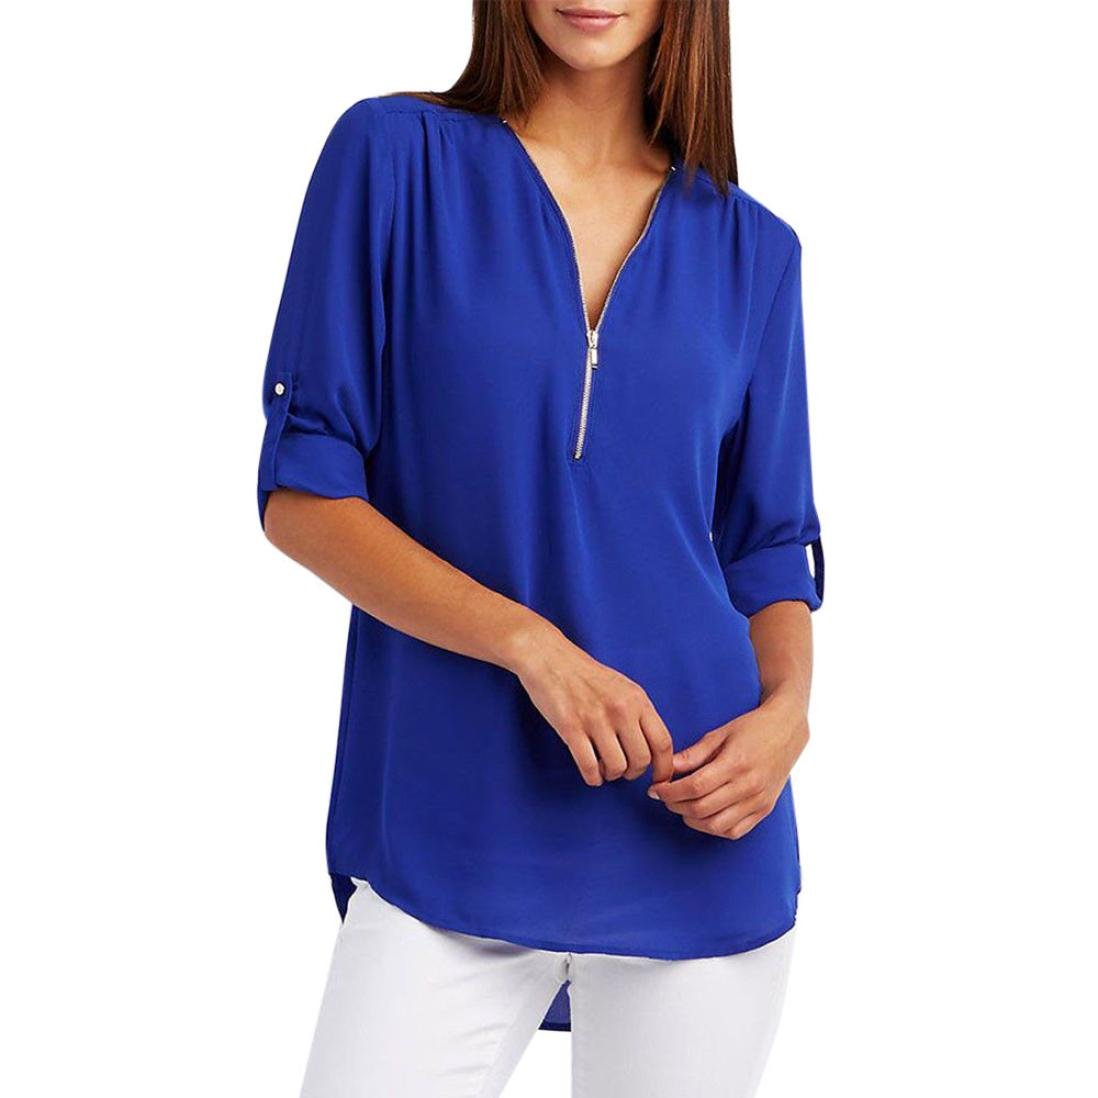 Women Tops, Gillberry Women Solid Casual Chiffon Tops T-Shirt Loose Top Long Sleeve Blouse (Blue, M) by Gillberry Women's Blouse (Image #1)